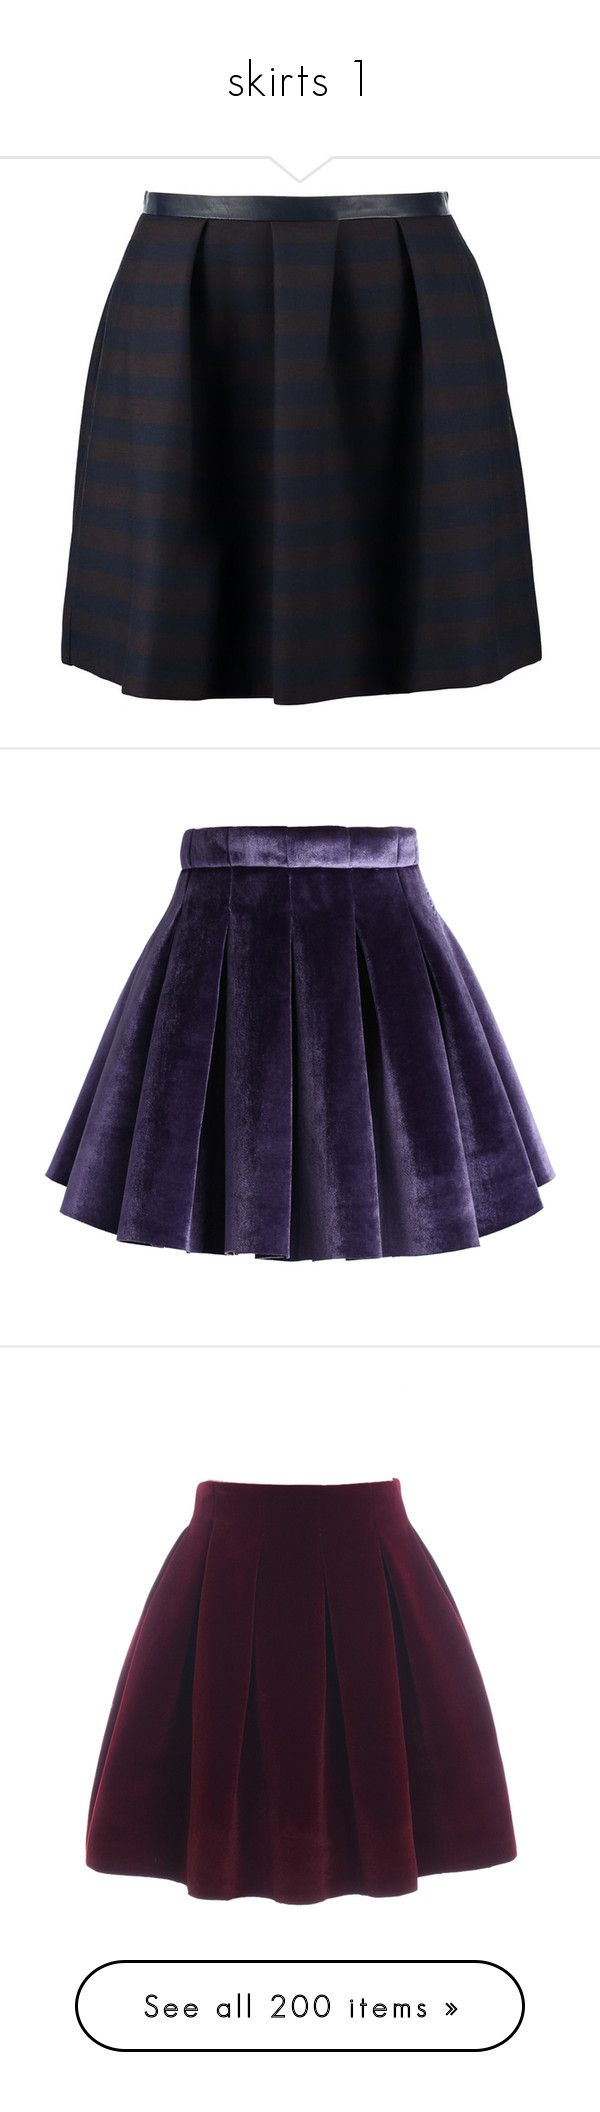 """skirts 1"" by noa005 ❤ liked on Polyvore featuring green, naf naf, skirts, mini skirts, bottoms, purple, saias, velvet mini skirt, box pleat skirt and velvet skirt"